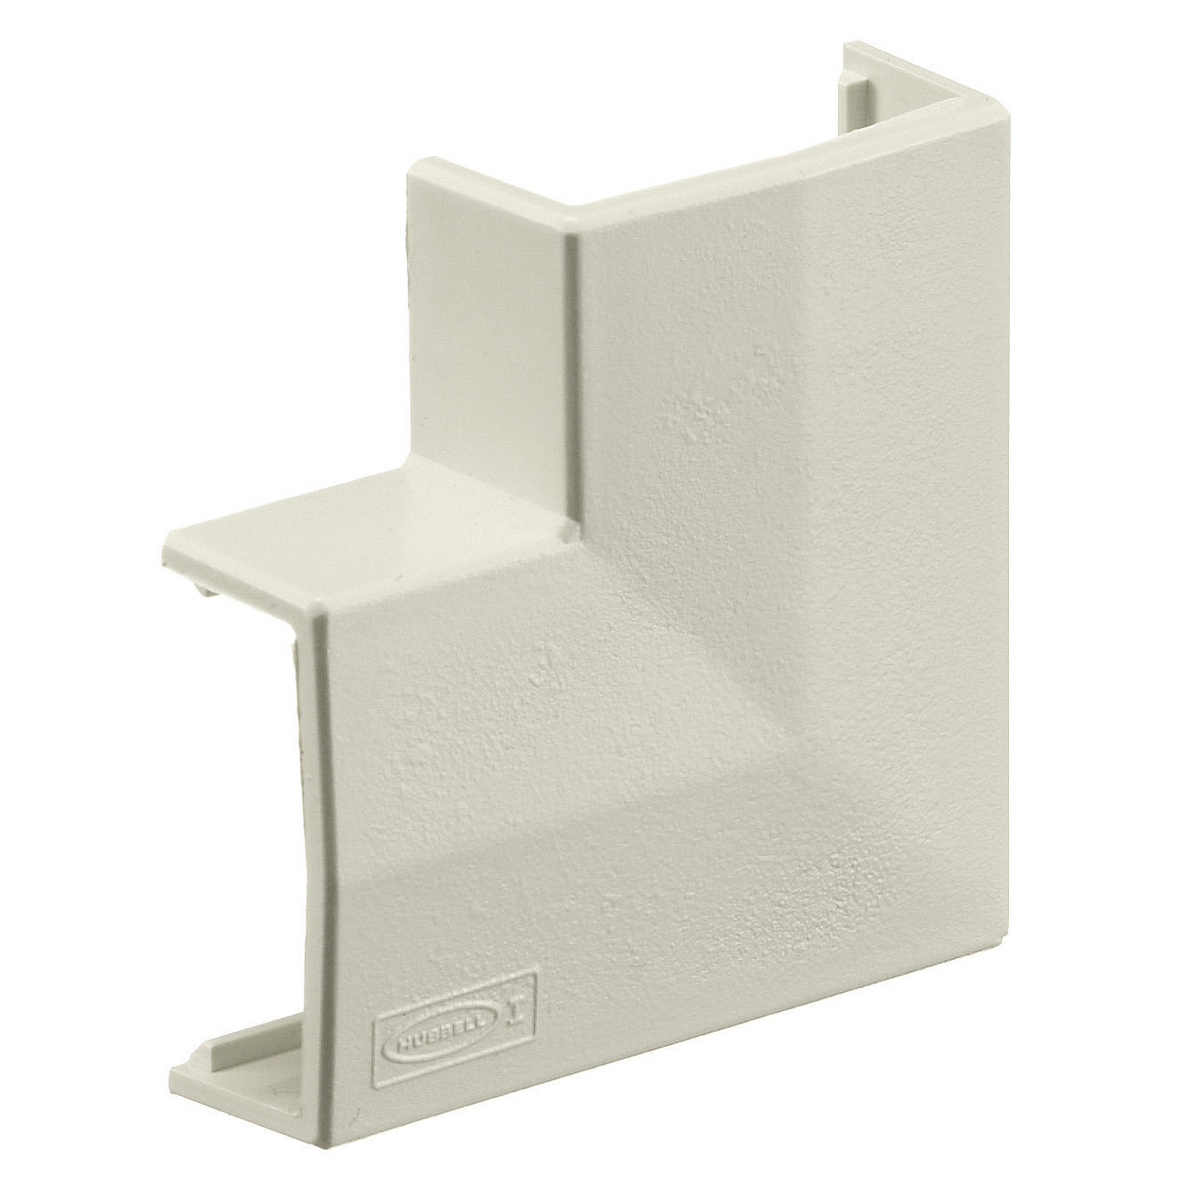 WALLTRAK1 FLAT ELBOW